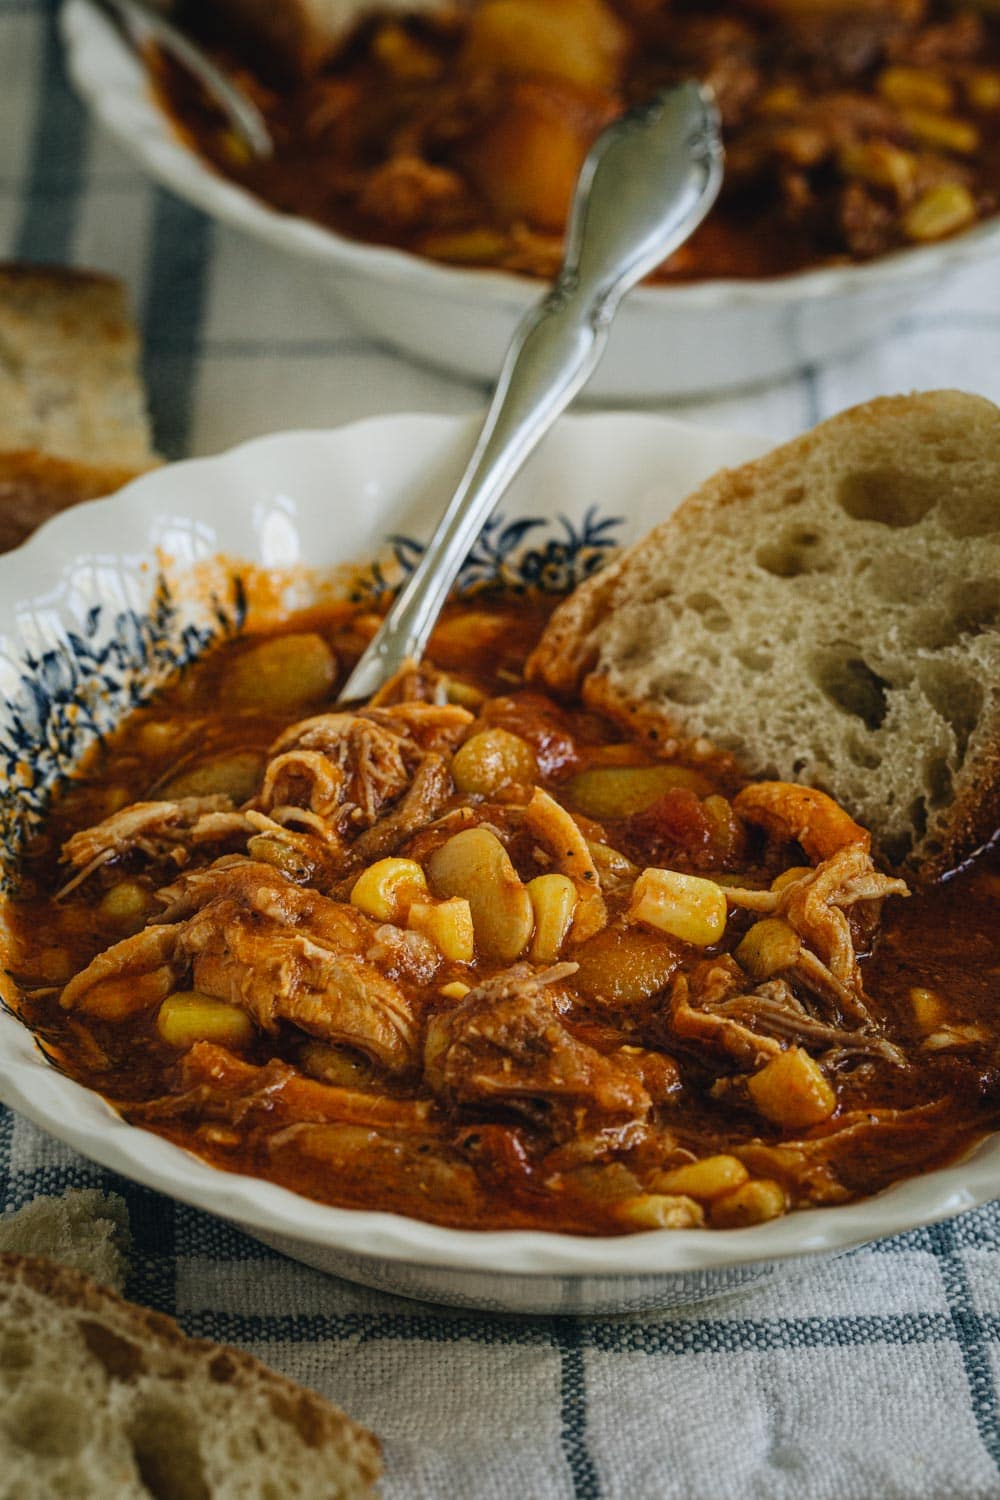 Side view of Brunswick stew in a white bowl with blue flowers and slice of bread.